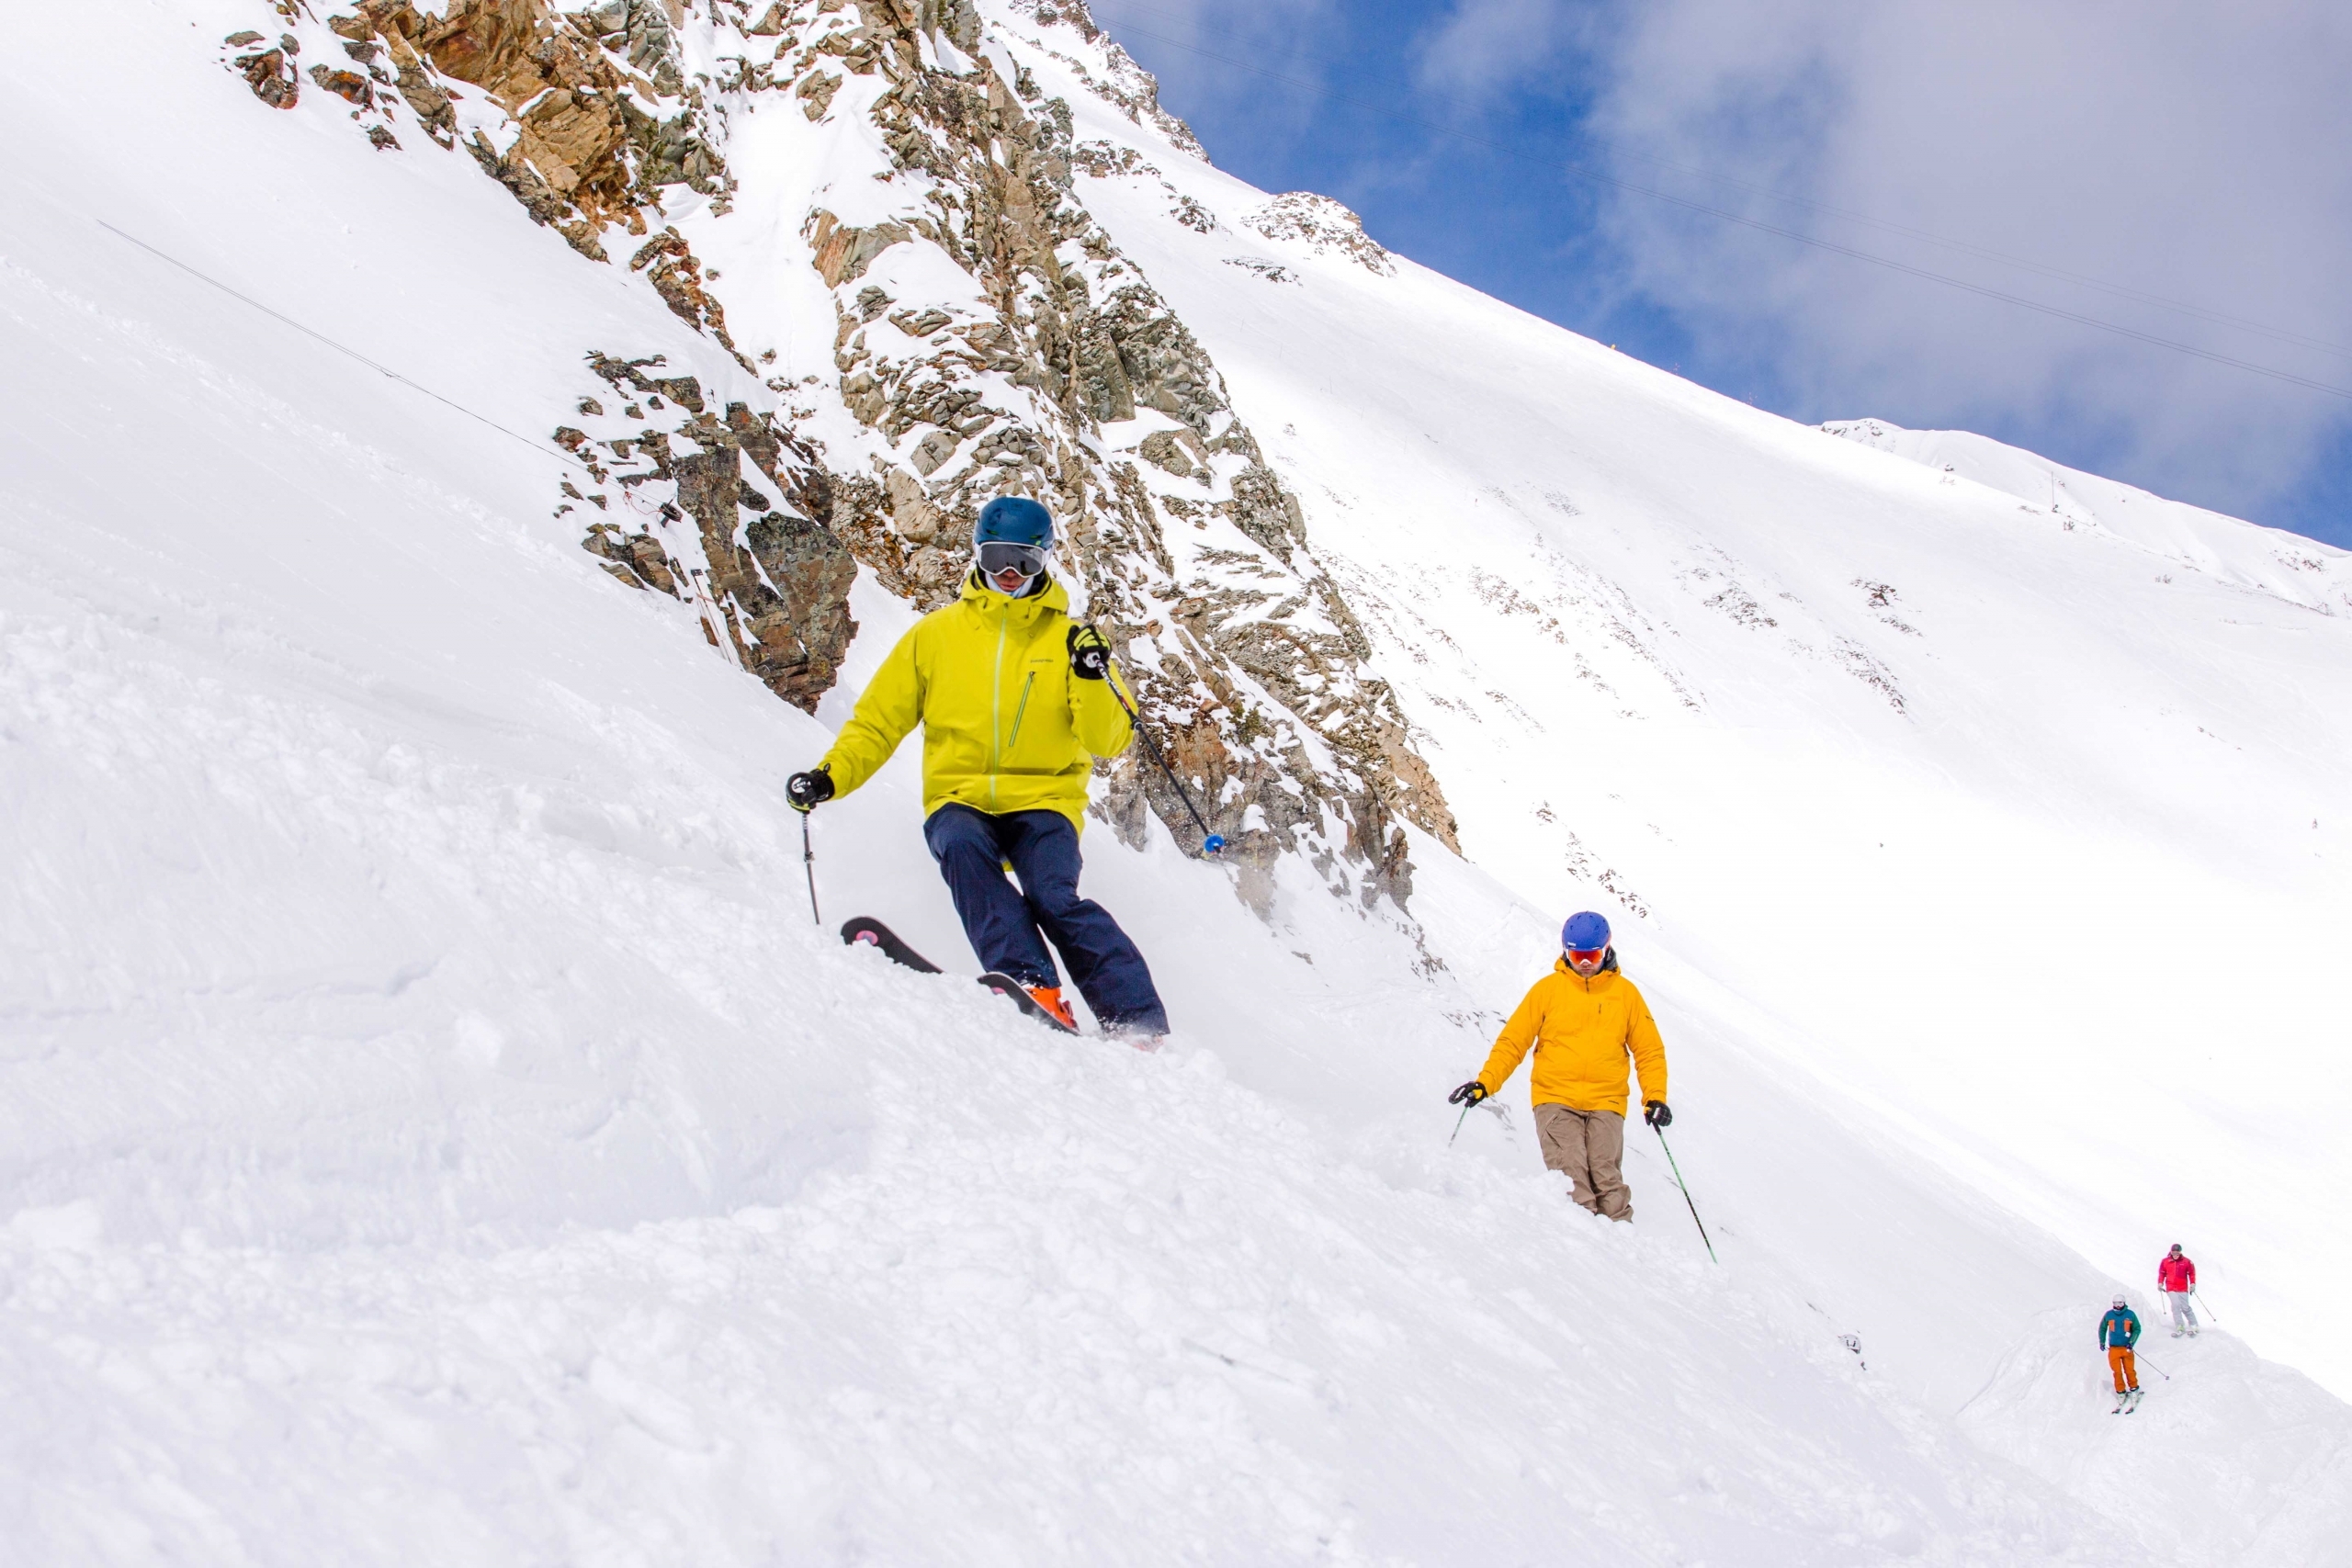 PSIA Alpine Team member Stephen Helfenbein leads a group of skiers as they traverse a steep slope covered in powder